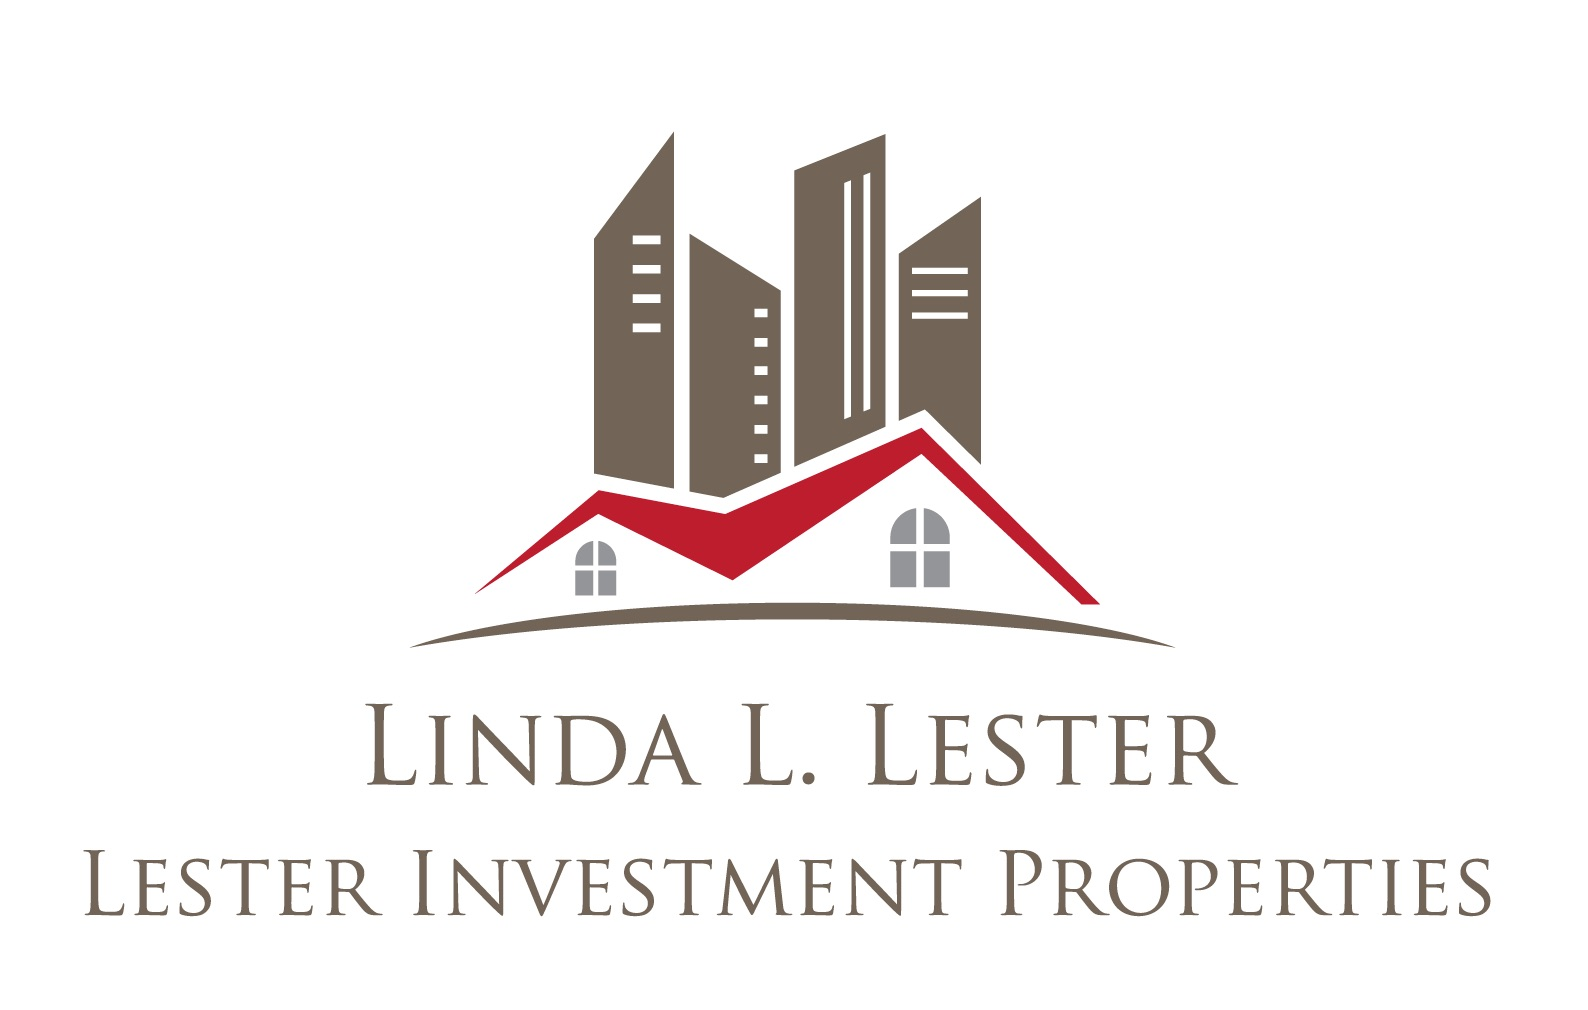 Linda Lester Investment Properties